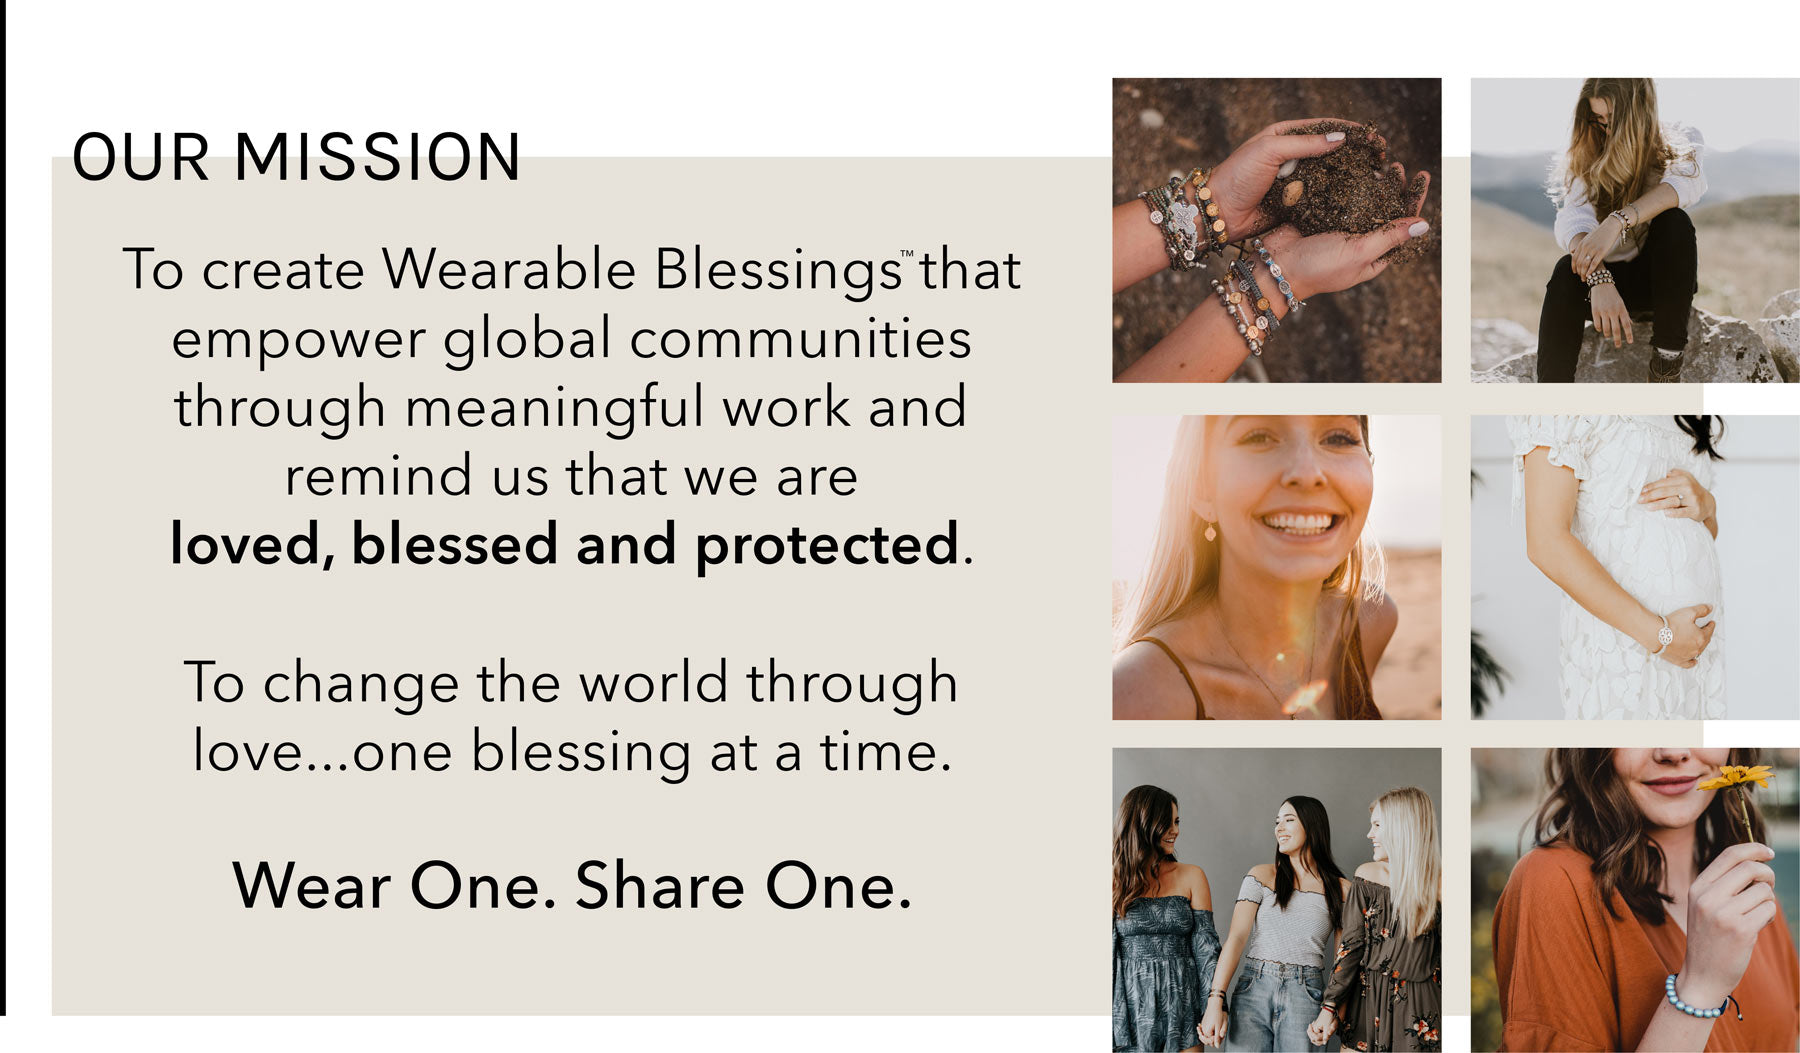 photos of the community of my saint my hero with the words of our mission statement To create Wearable Blessings™ that empower global communities through meaningful work and remind us that we are loved, blessed and protected. To change the world through love...one blessing at a time. Wear One. Share One.